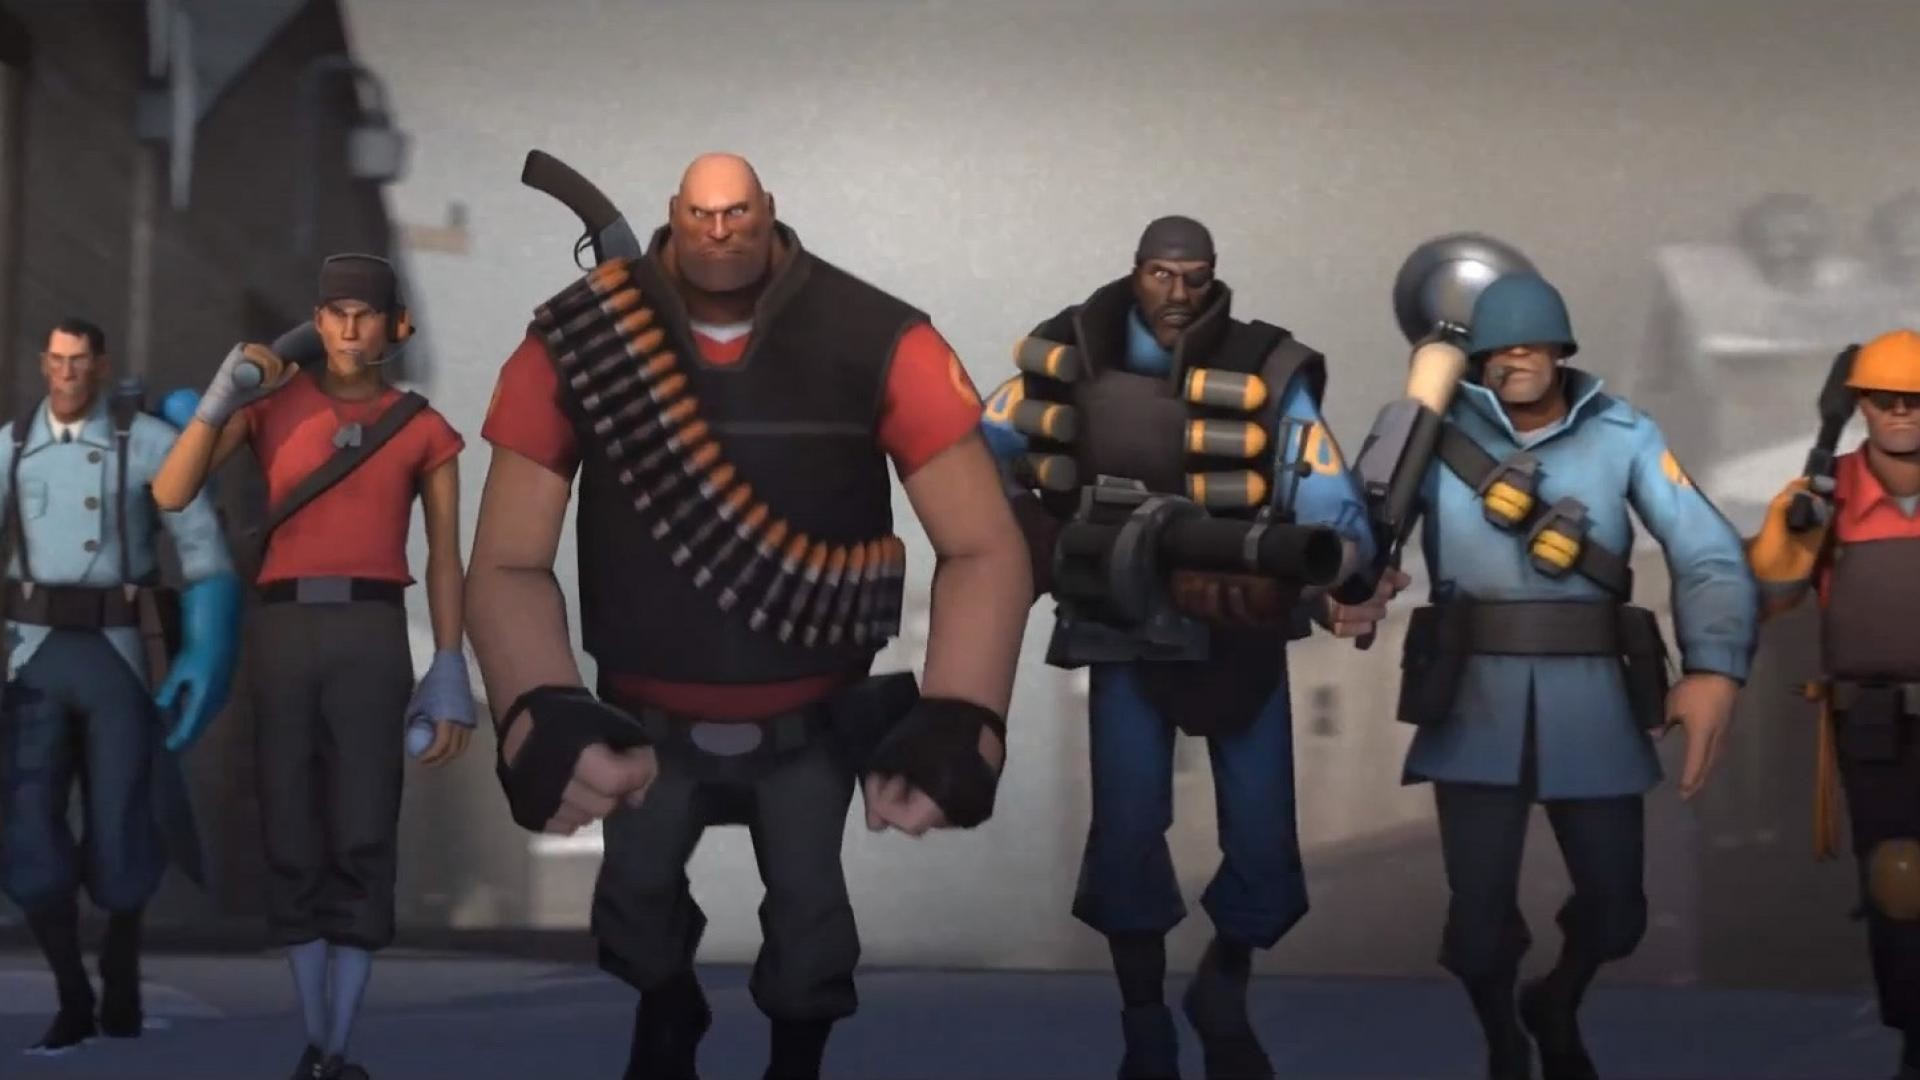 1920x1080 Pyro TF Spy TF Team Fortress Pyro wallpaper x | HD Wallpapers | Pinterest |  Team fortress, Hd wallpaper and Wallpaper